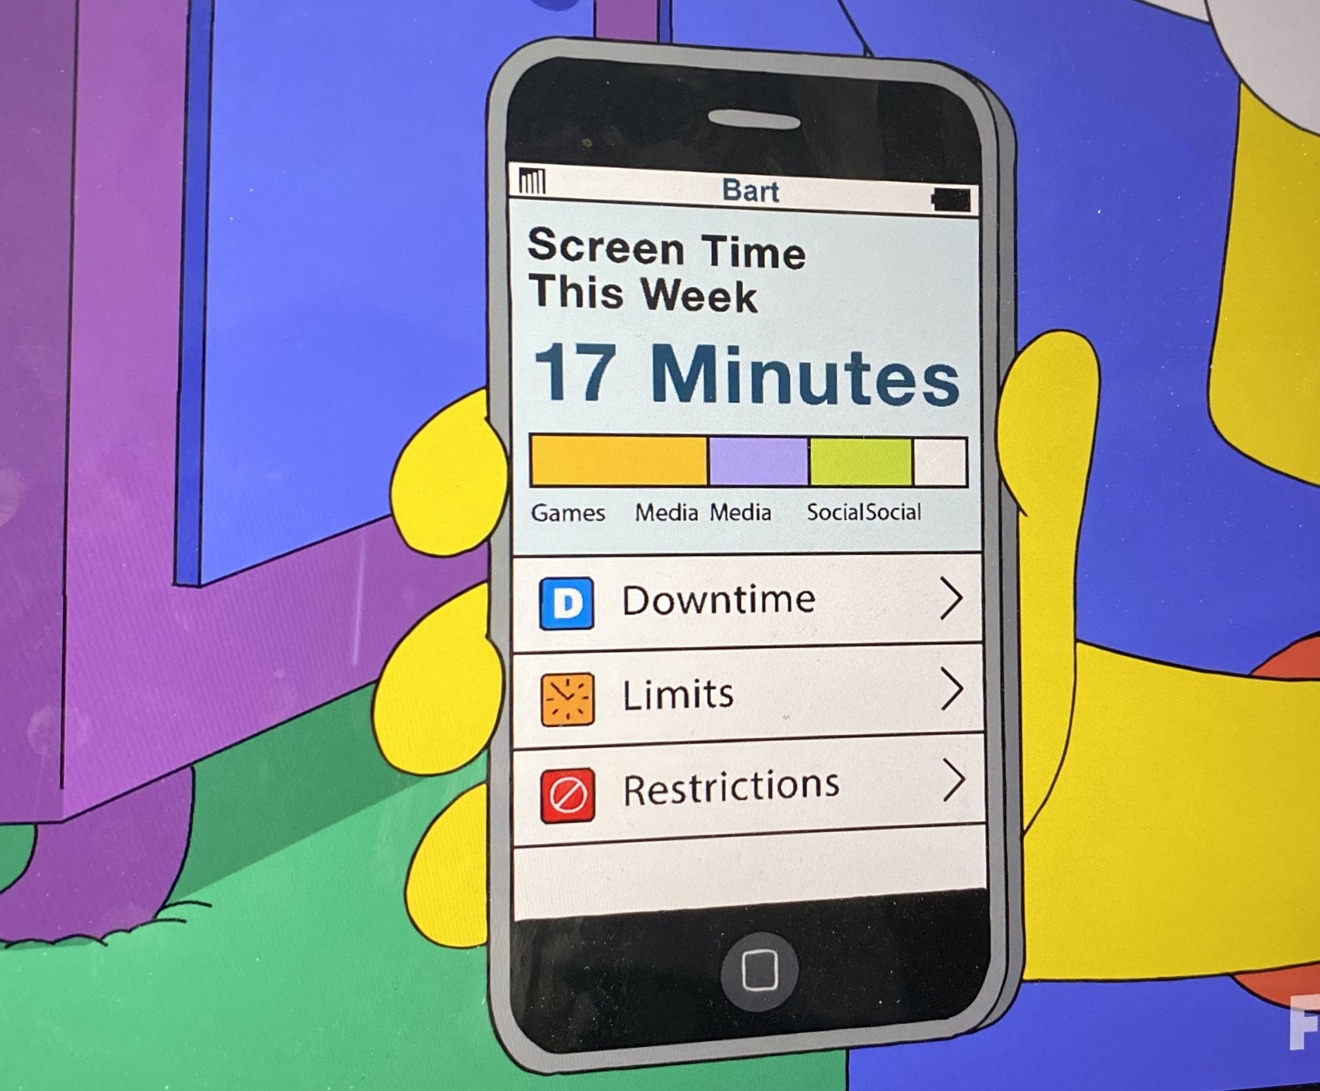 Bart's Screen Time report